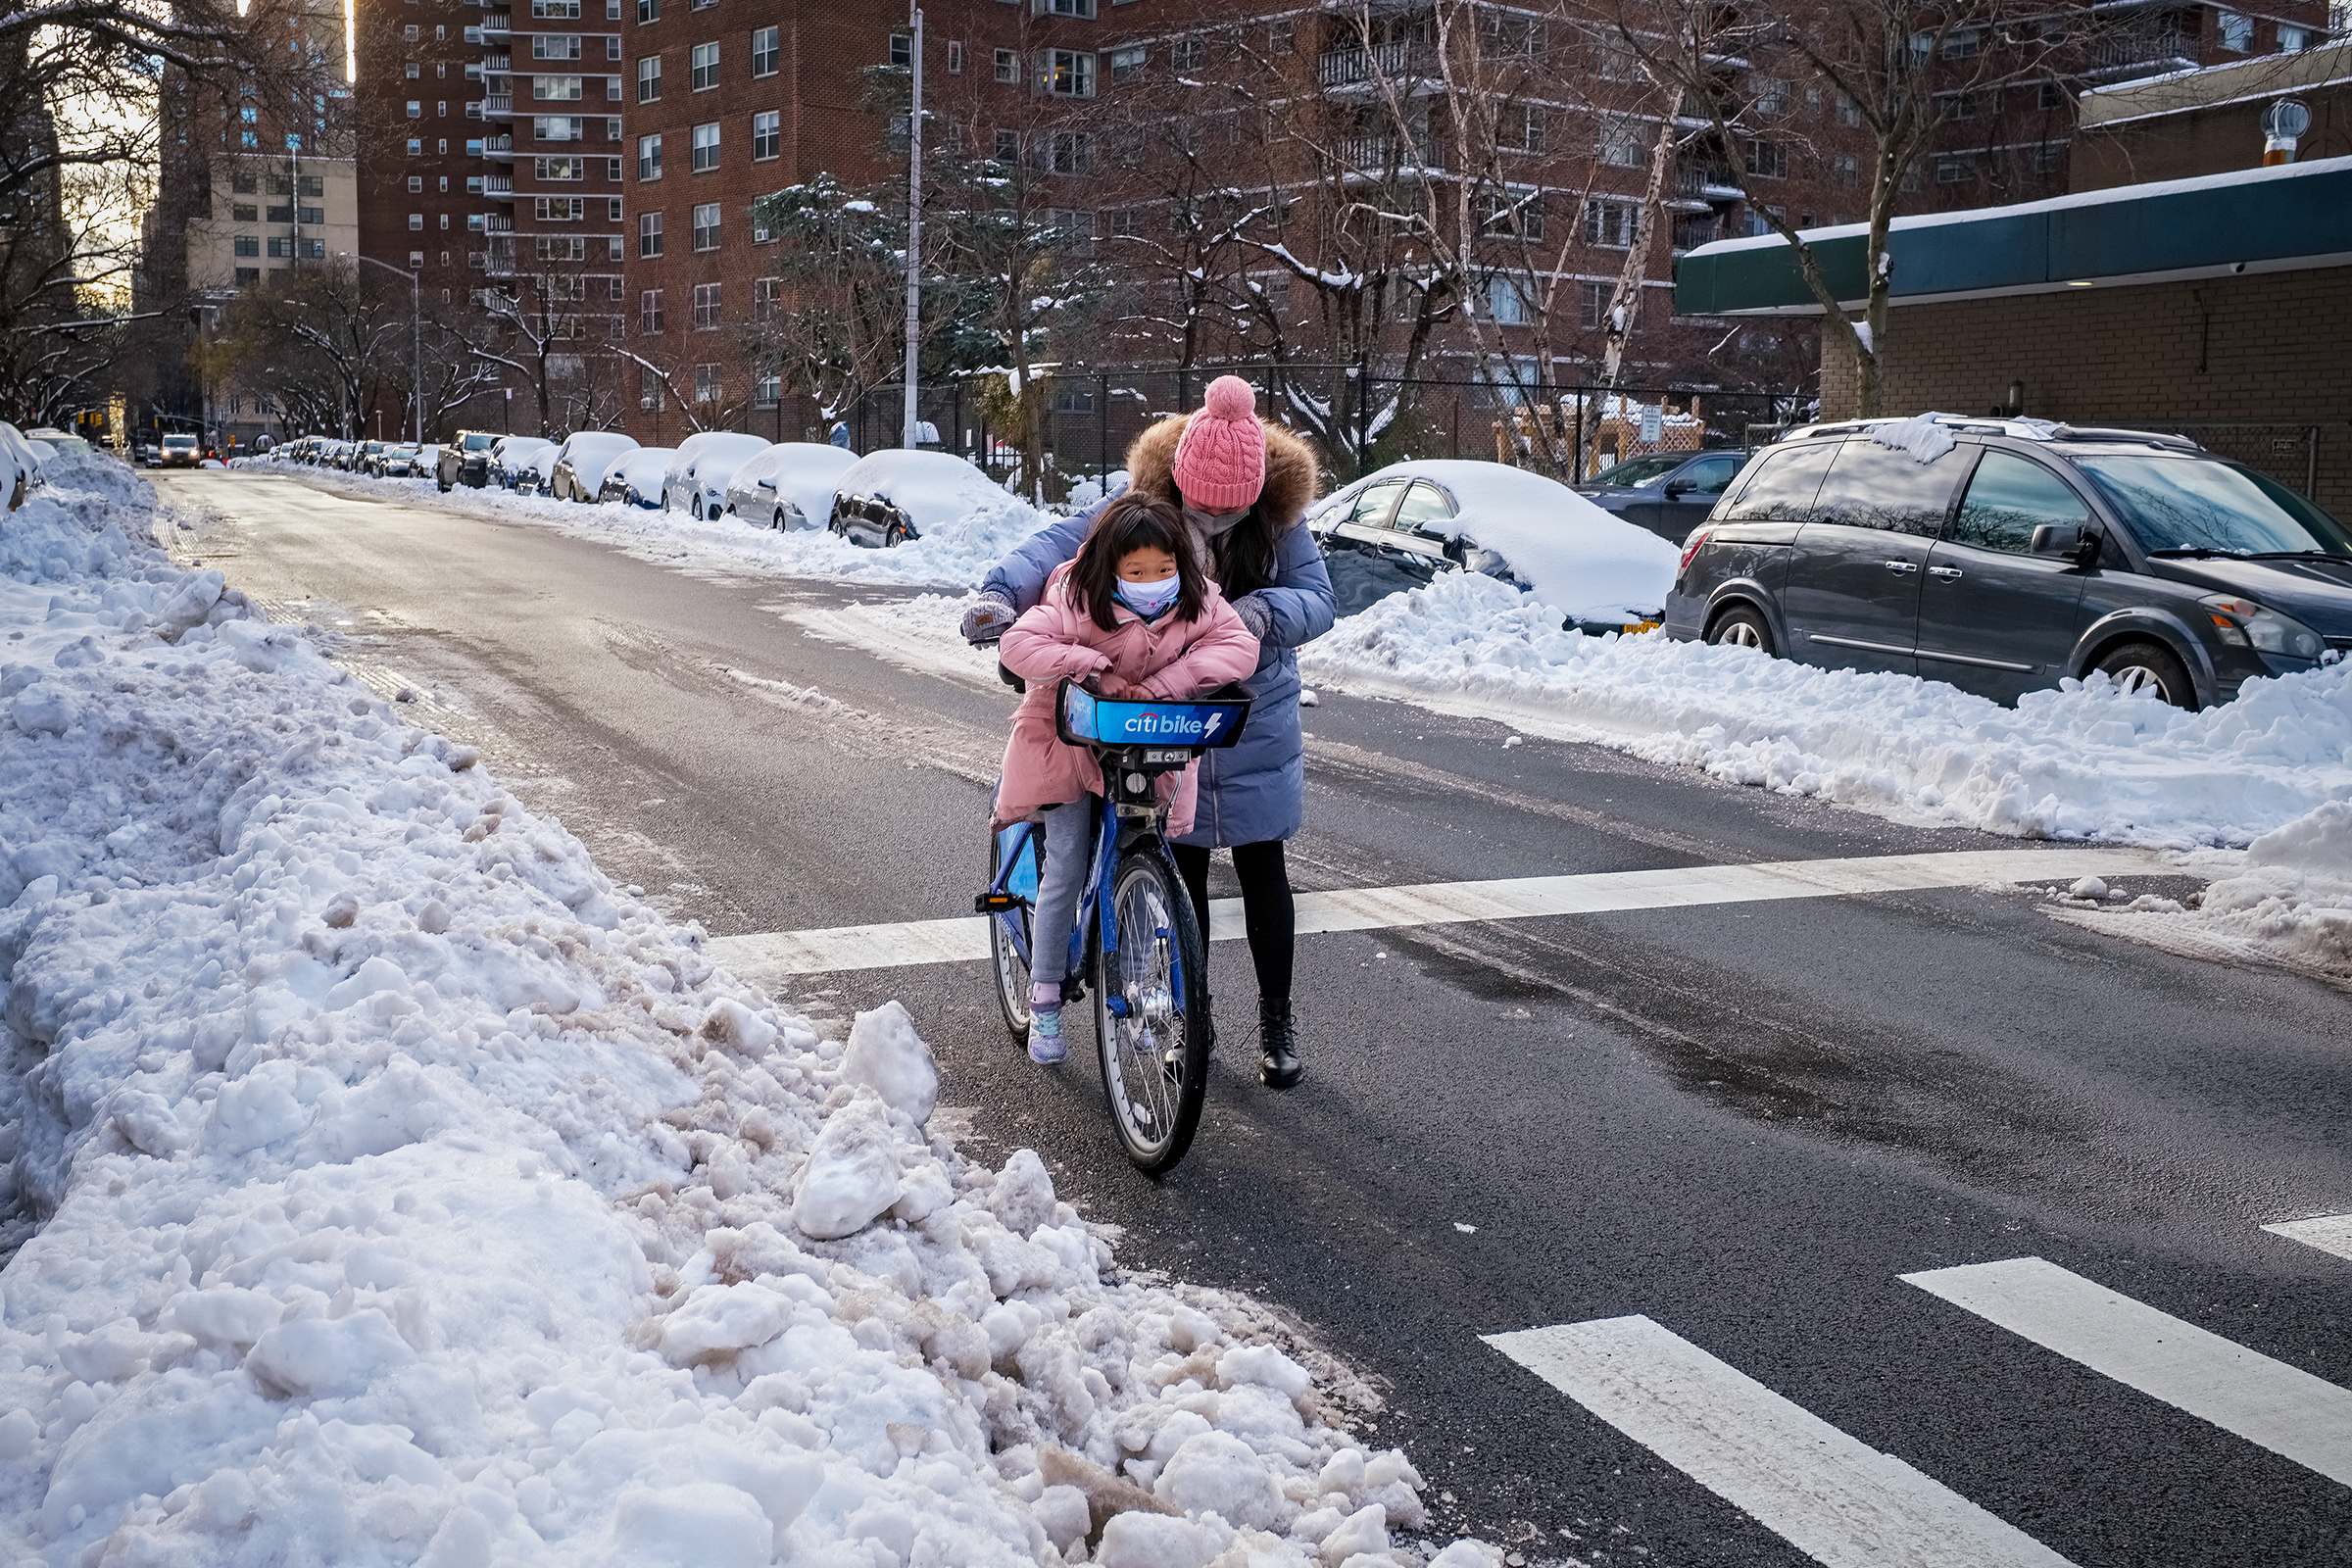 A young girl and her mom adventure out in the cold in New York City's Chelsea section. [David Levy]